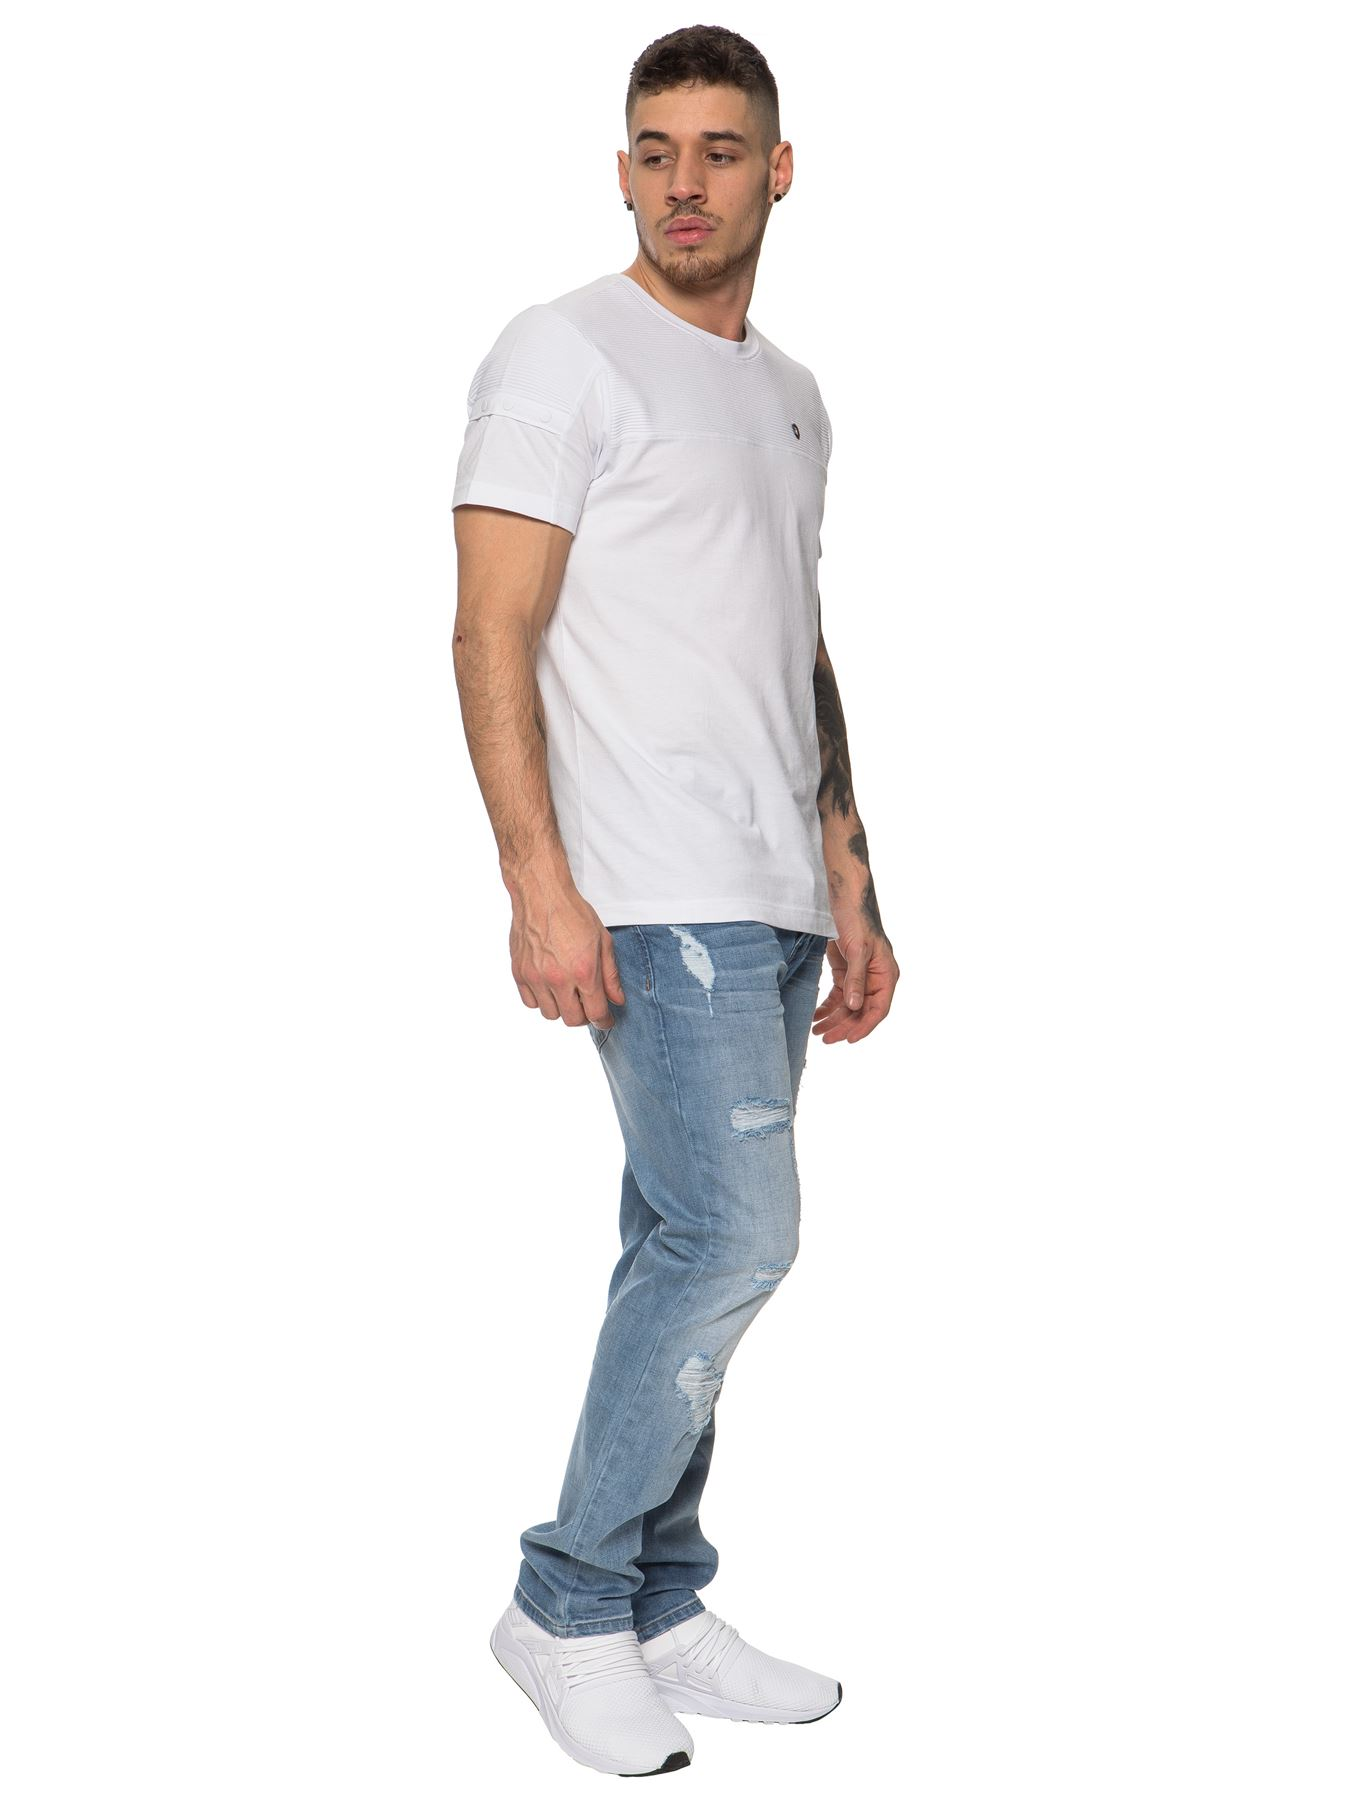 ETO-Designer-Mens-Ripped-Blue-Jeans-Distressed-Denim-Tapered-Fit-Trousers-Pants thumbnail 12